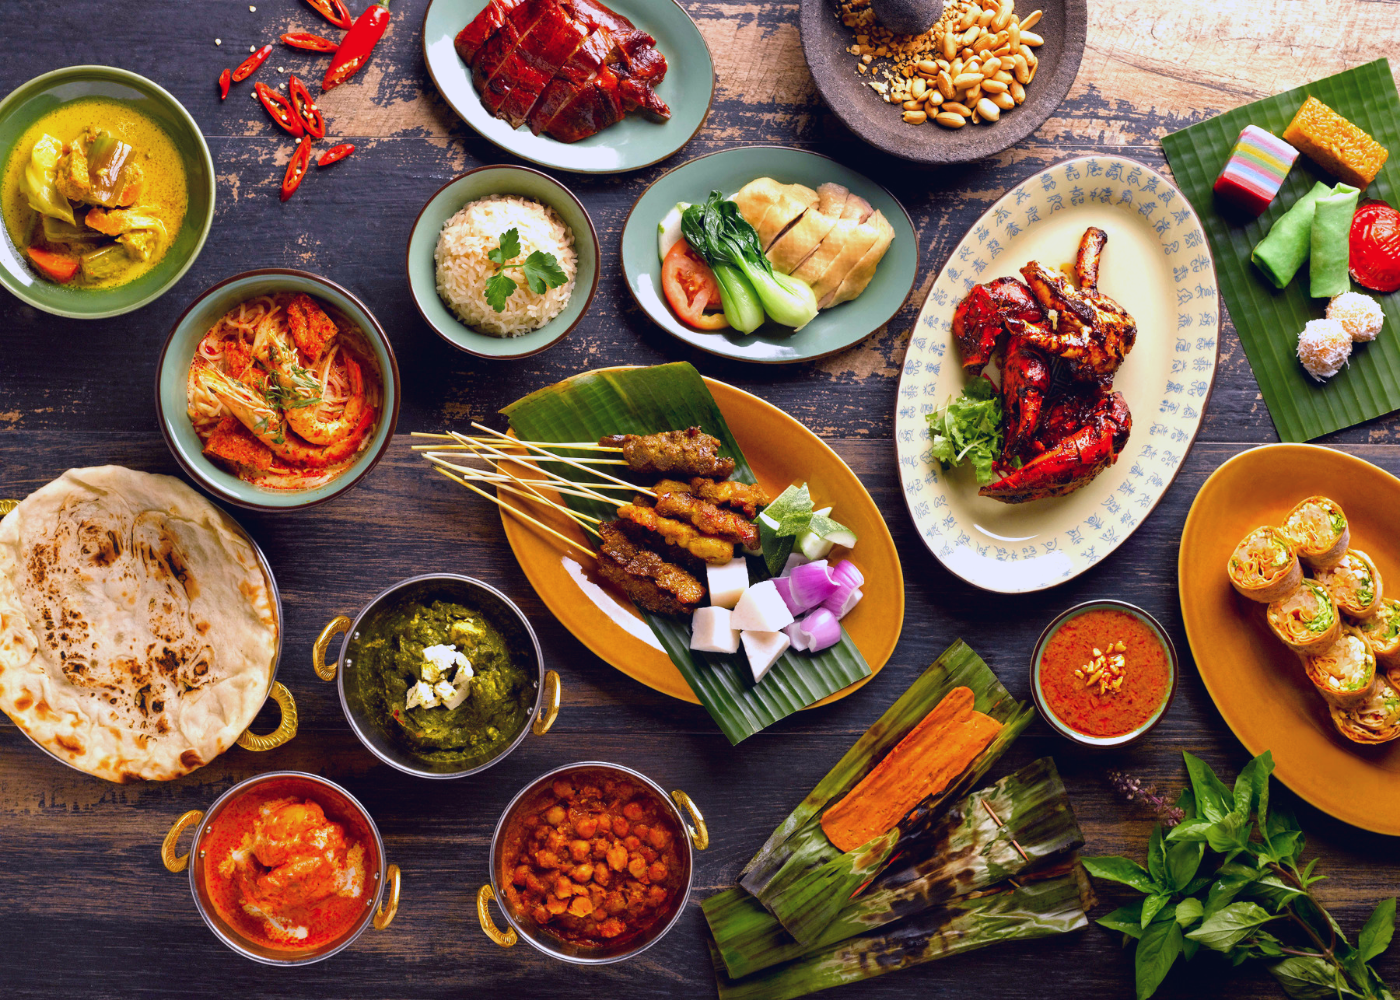 Sound the weekend klaxon, because StraitsKitchen at Grand Hyatt Singapore has launched its first-ever weekend afternoon tea buffet